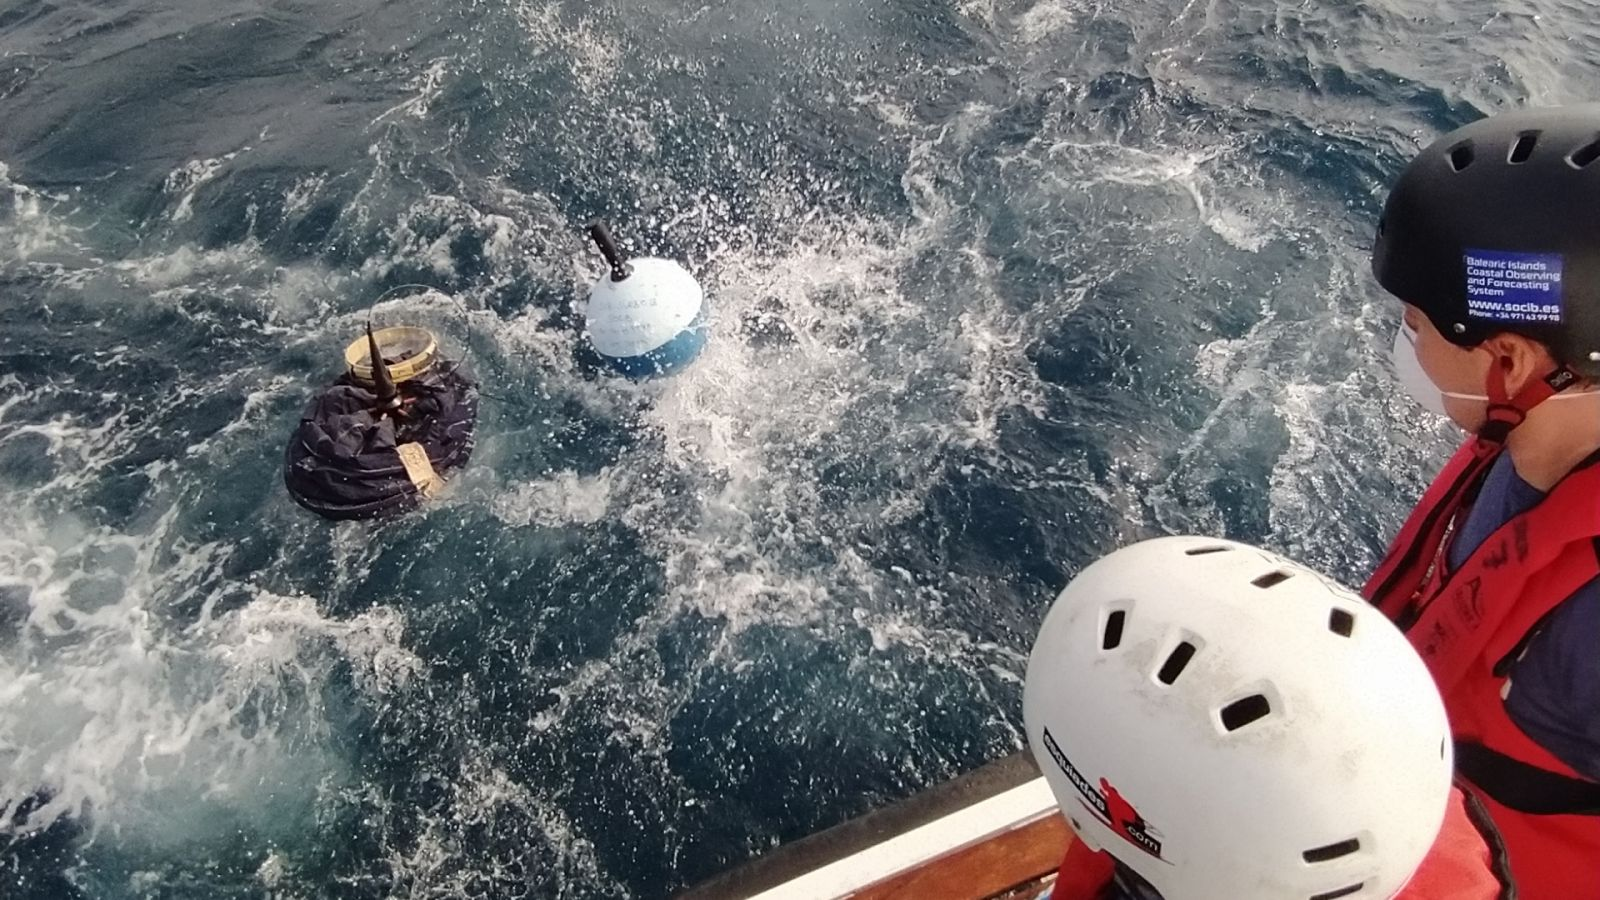 The SOCIB team on board R/V SOCIB has deployed two surface drifters (SVP-B) in the Ibiza Channel, within the framework of the Global Drifter Program (NOAA).